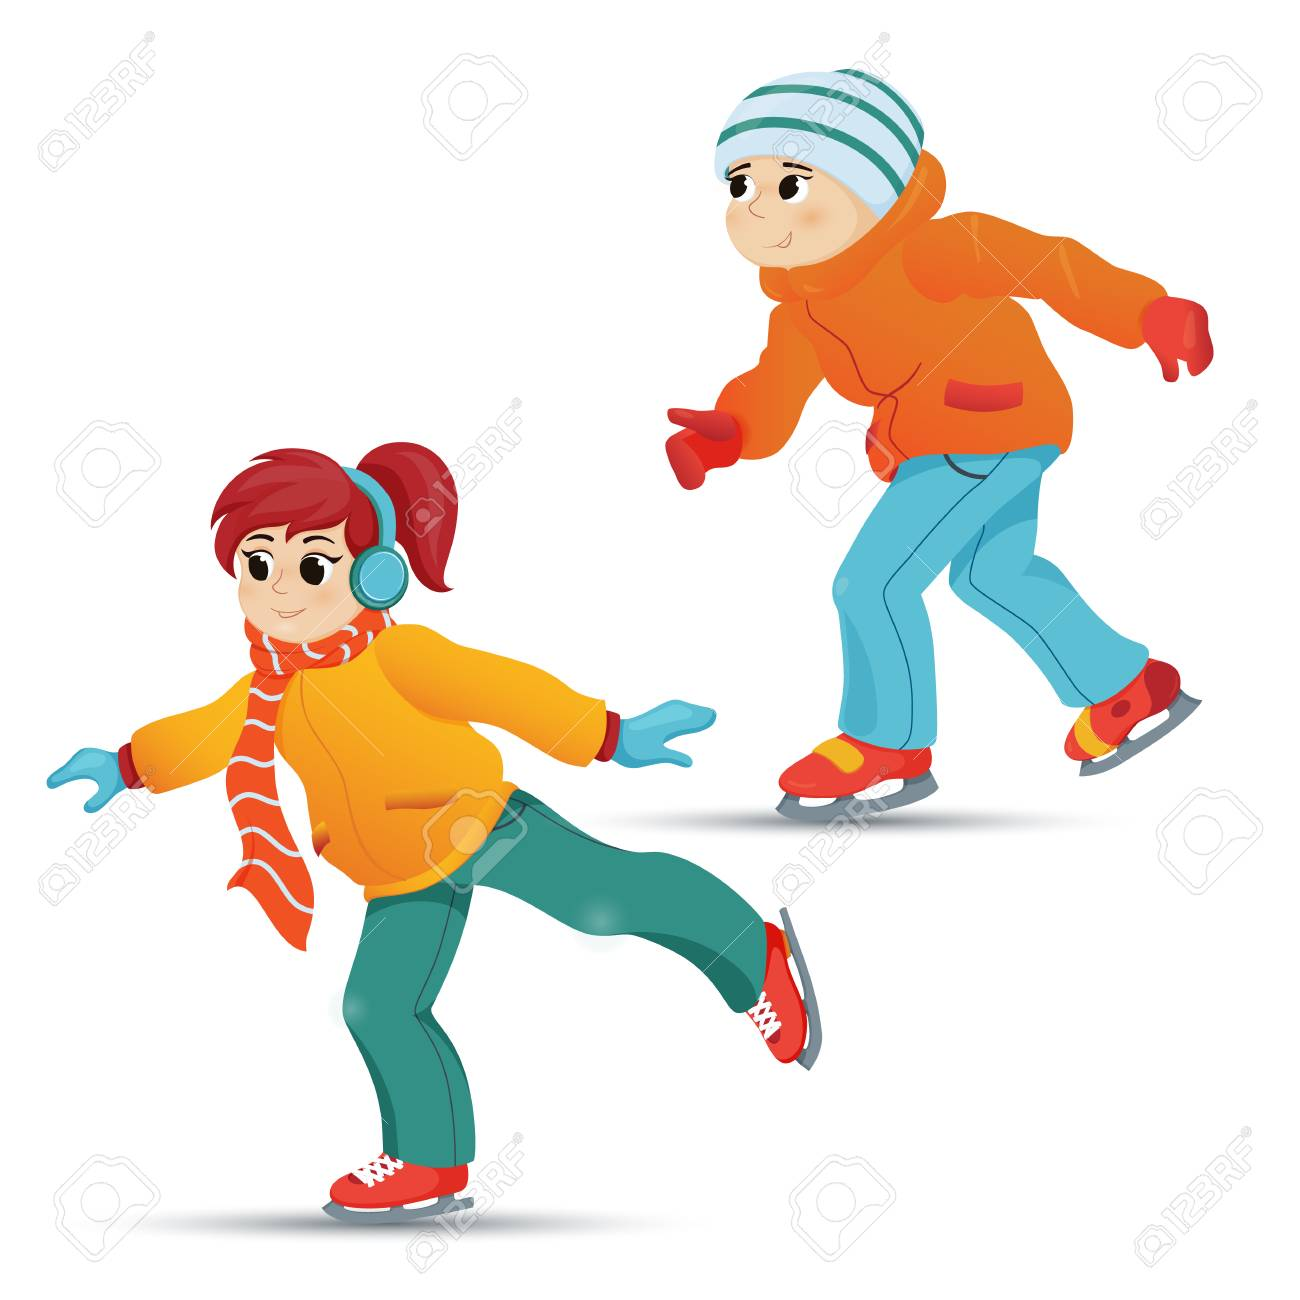 Retro Cartoon Vector Illustration Isolated On White Background Two Friends Boy And Girl Ice Skating Winter Vacation Outdoor Activity